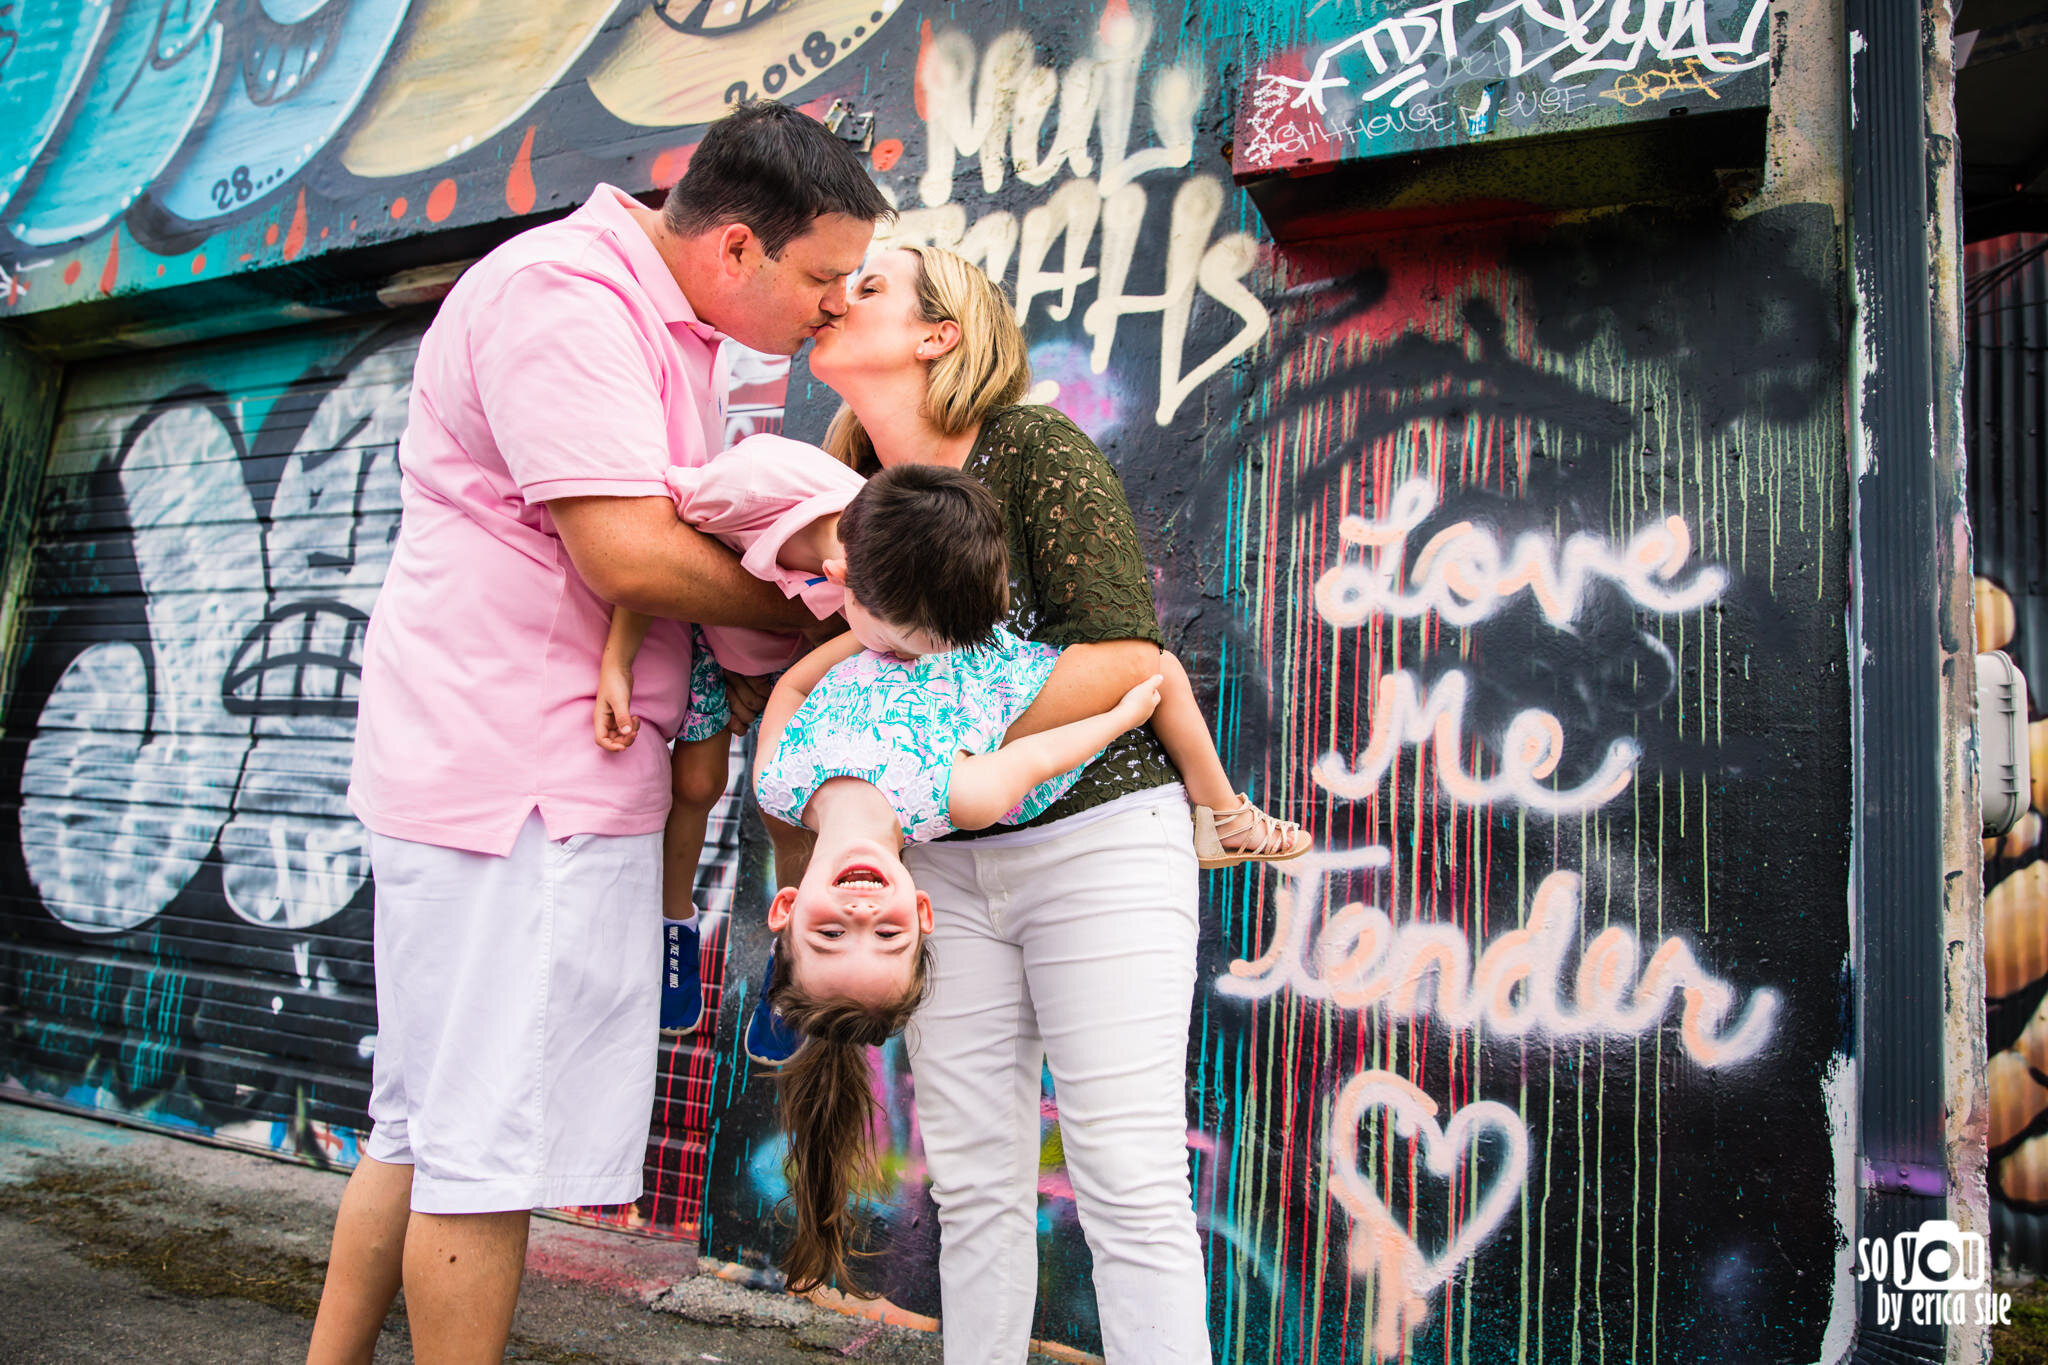 so-you-by-erica-fat-village-ft-lauderdale-murals-lifestyle-family-photographer-7405.JPG